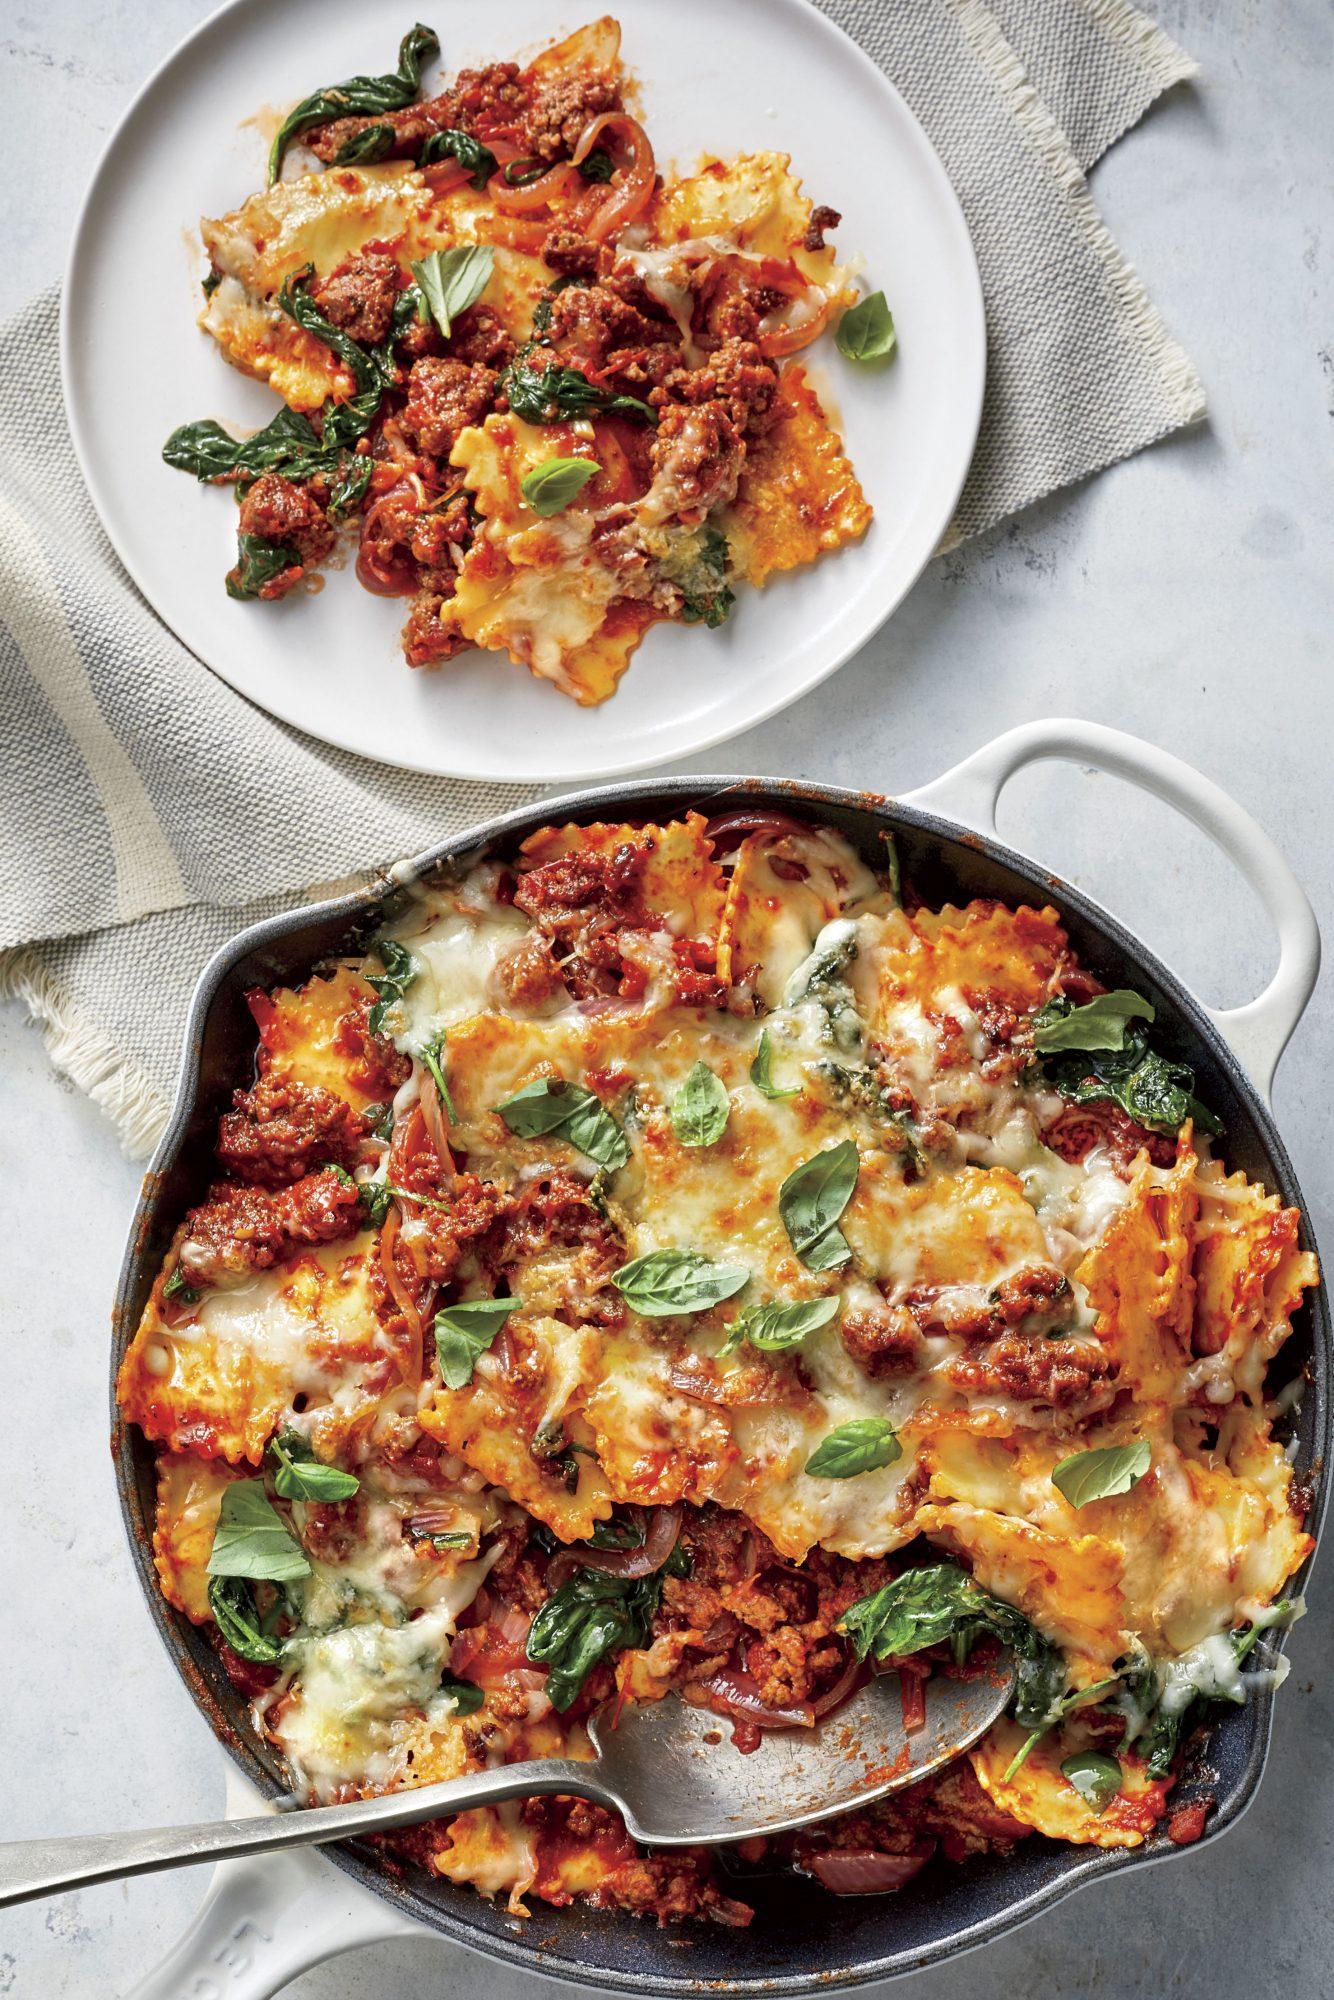 Beefy Baked Ravioli with Spinach and Cheese